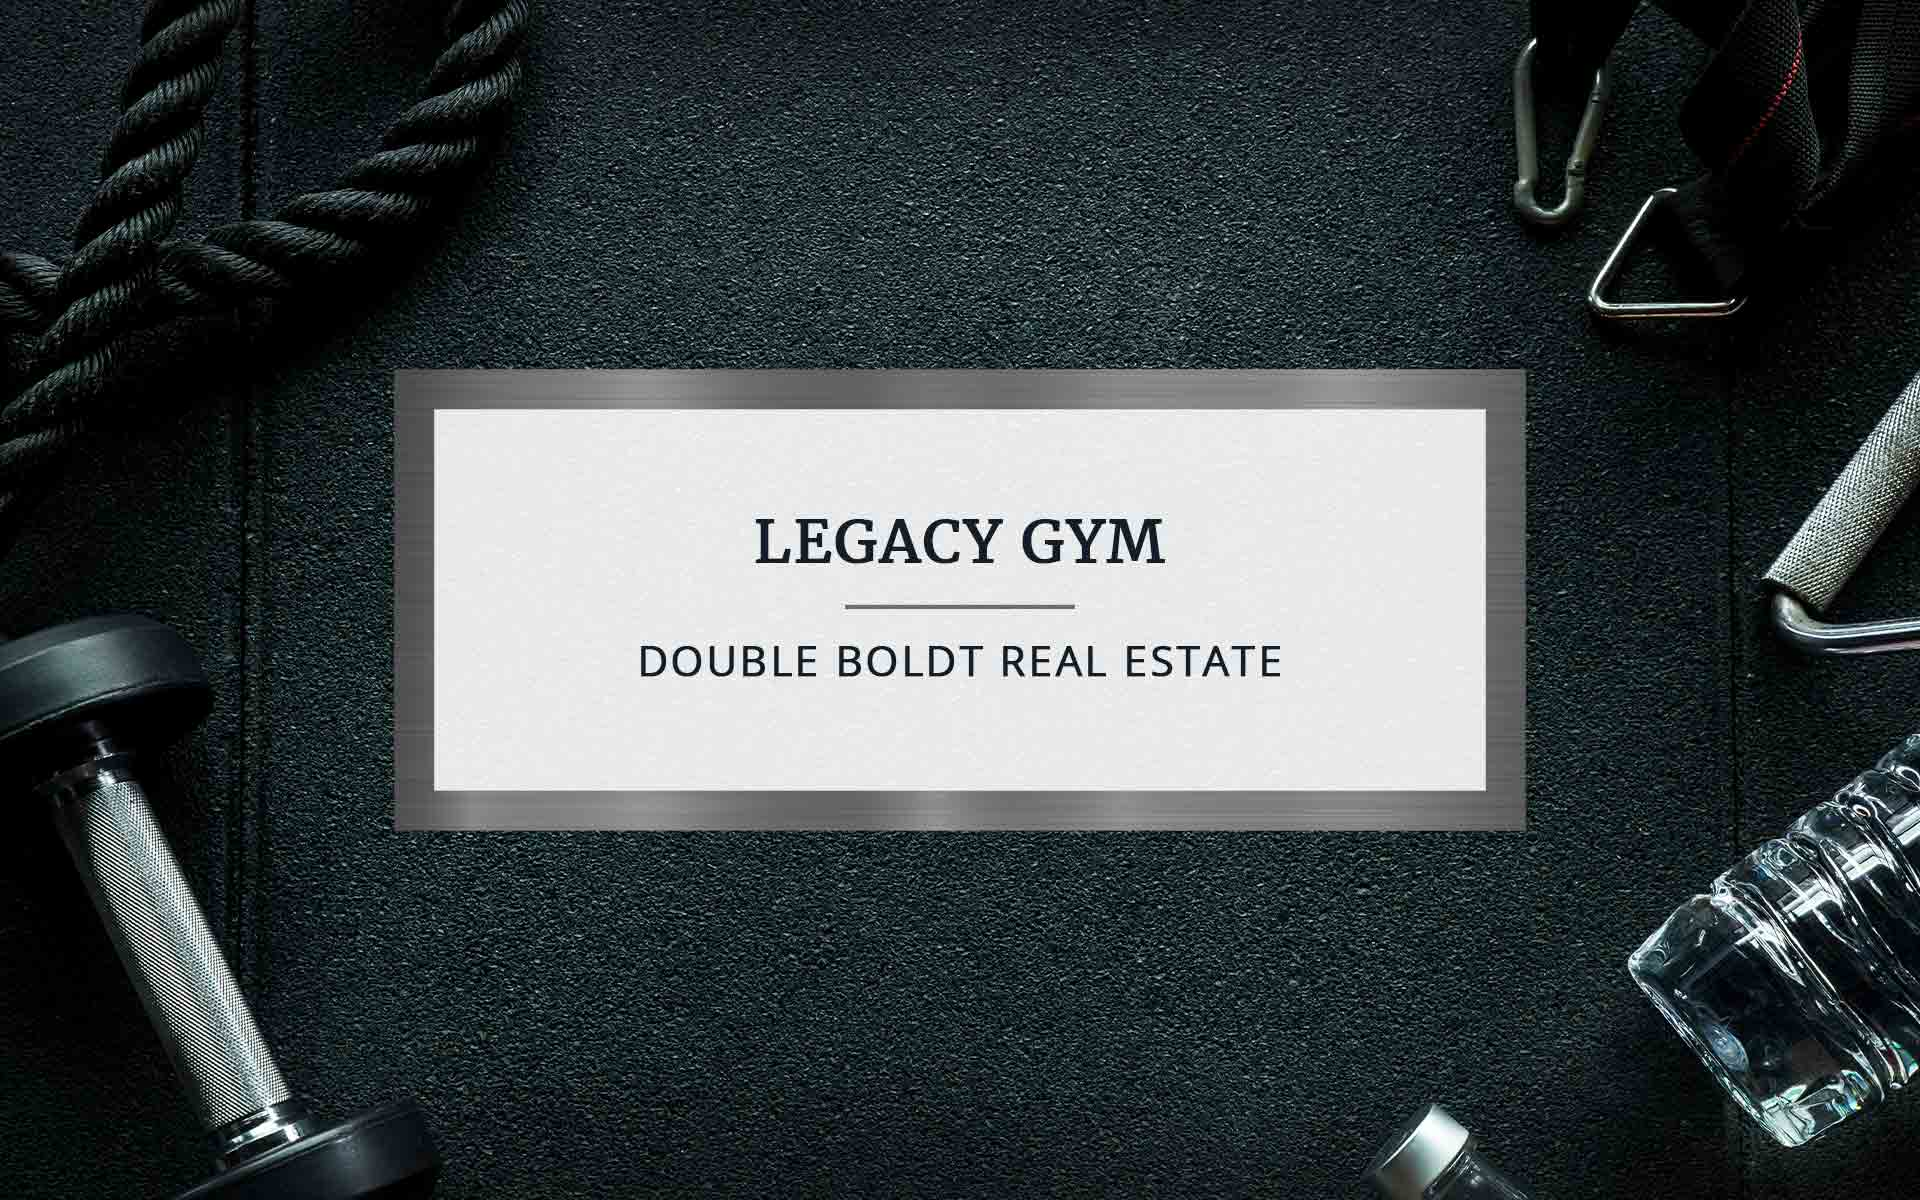 Legacy Gym | Double Boldt Real Estate